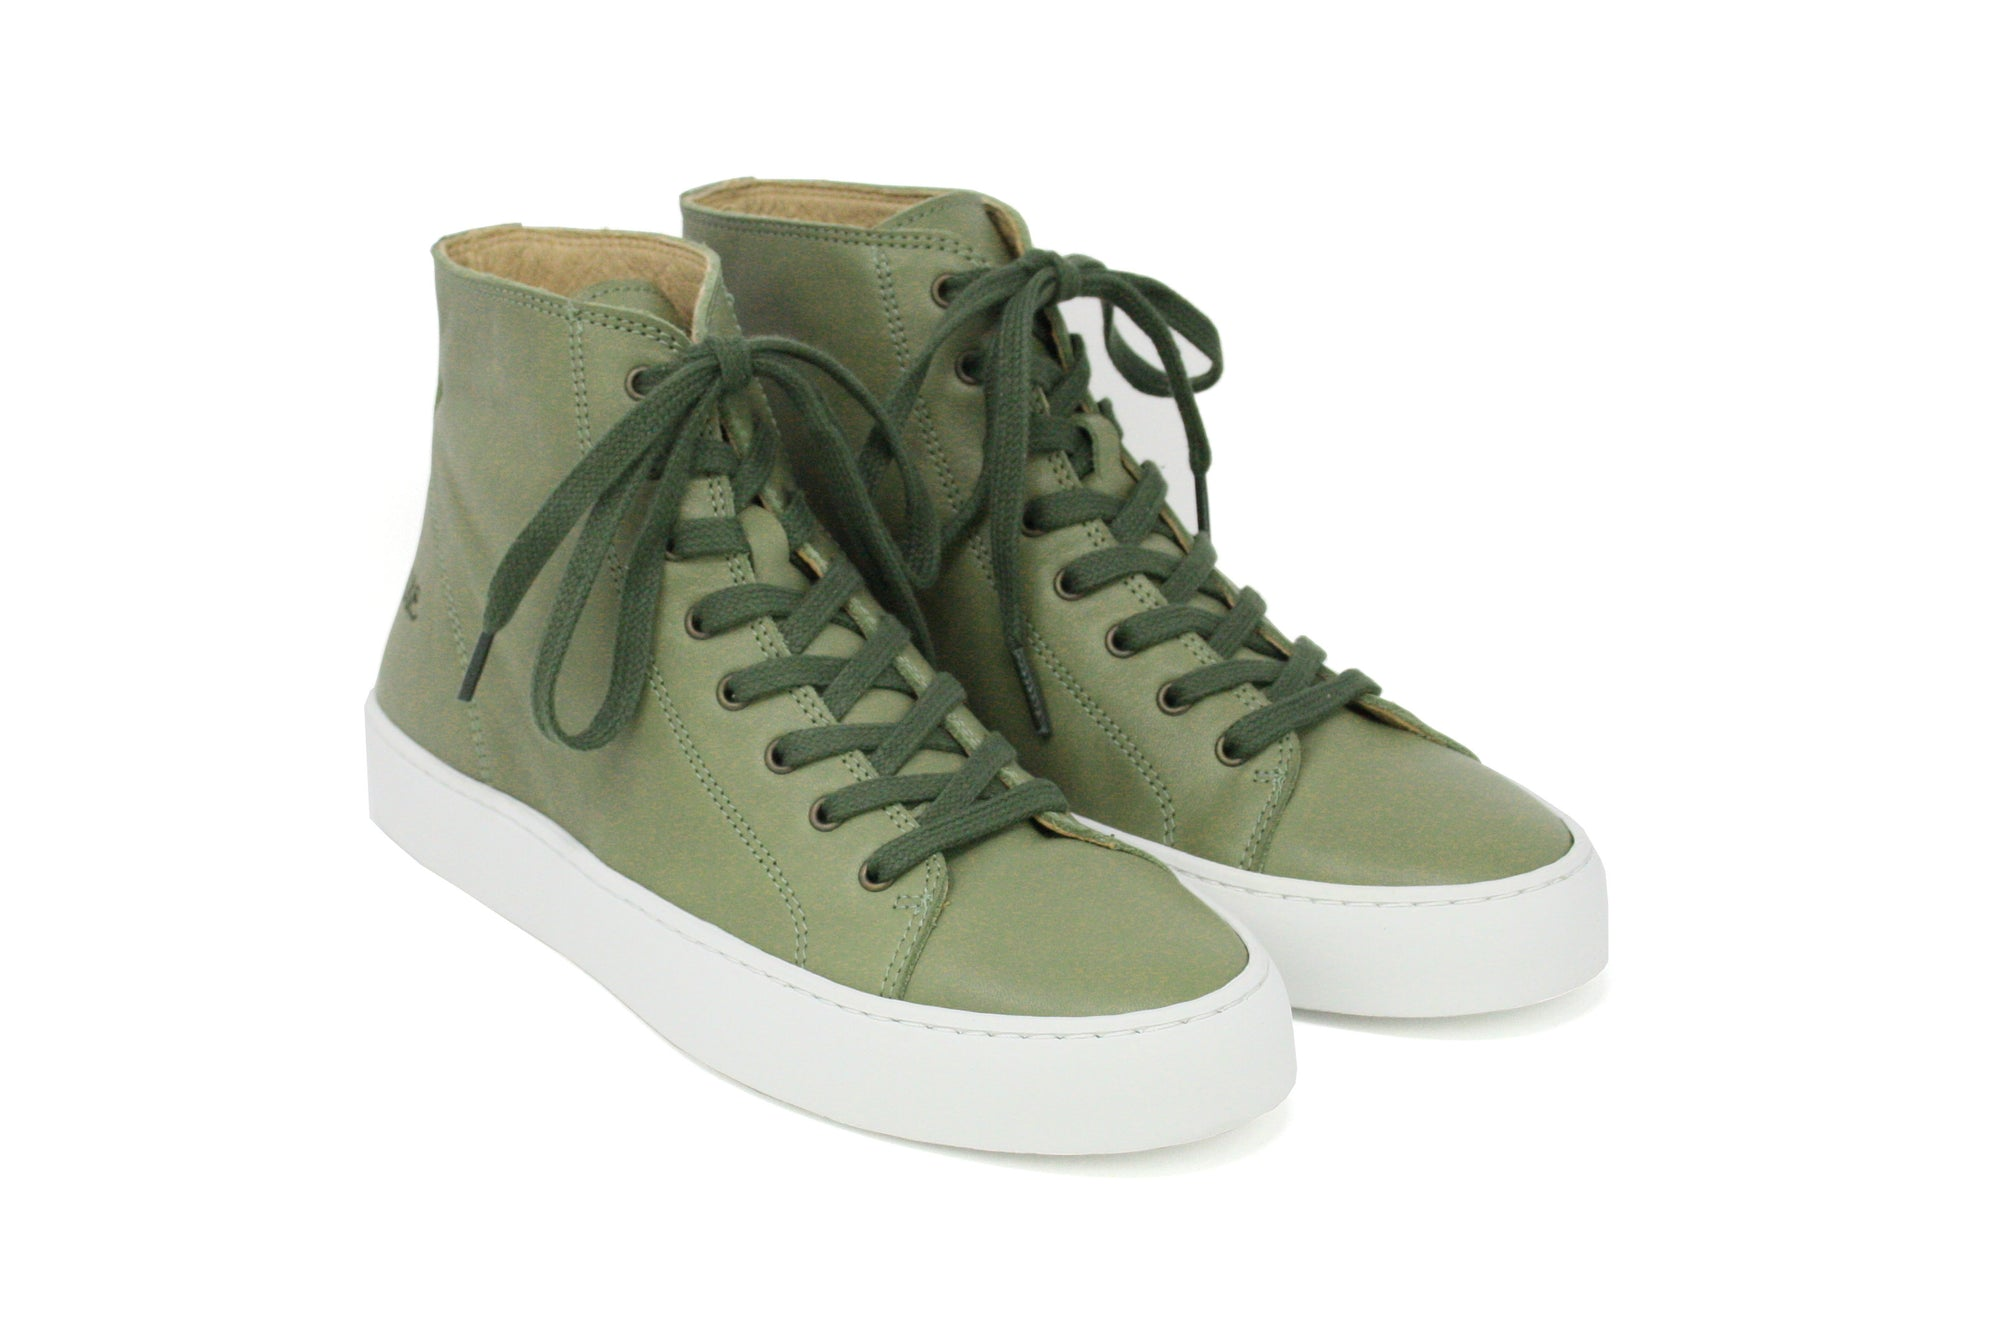 SNEAKER HIGH 2.0 olive